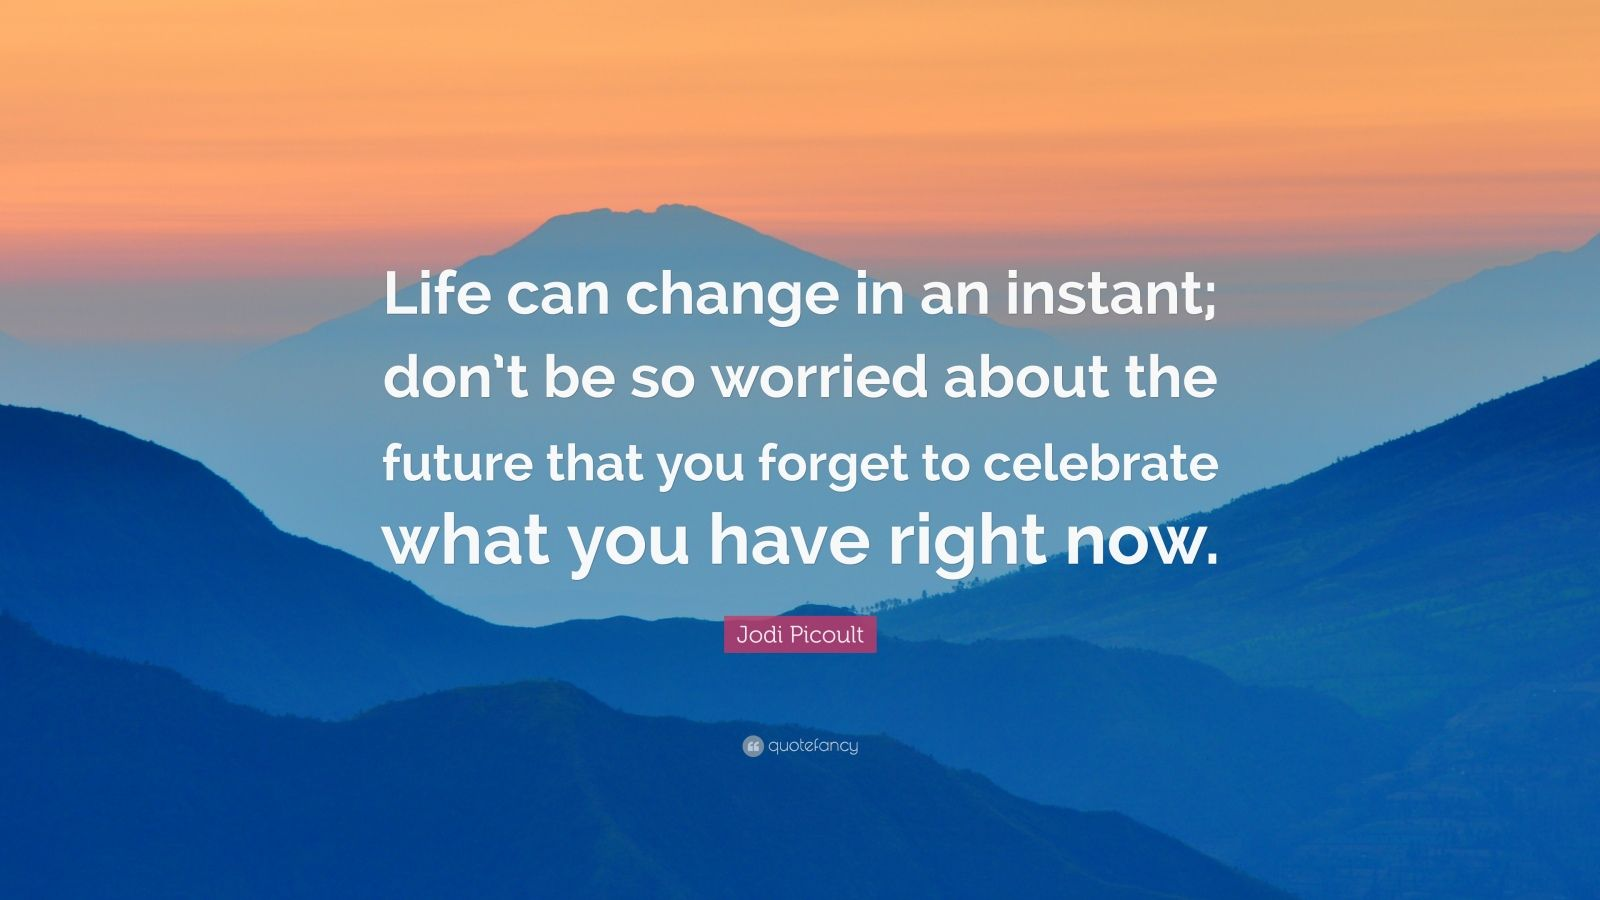 """Jodi Picoult Quote: """"Life can change in an instant; don't be so worried about the future that you forget to celebrate what you have right now."""""""